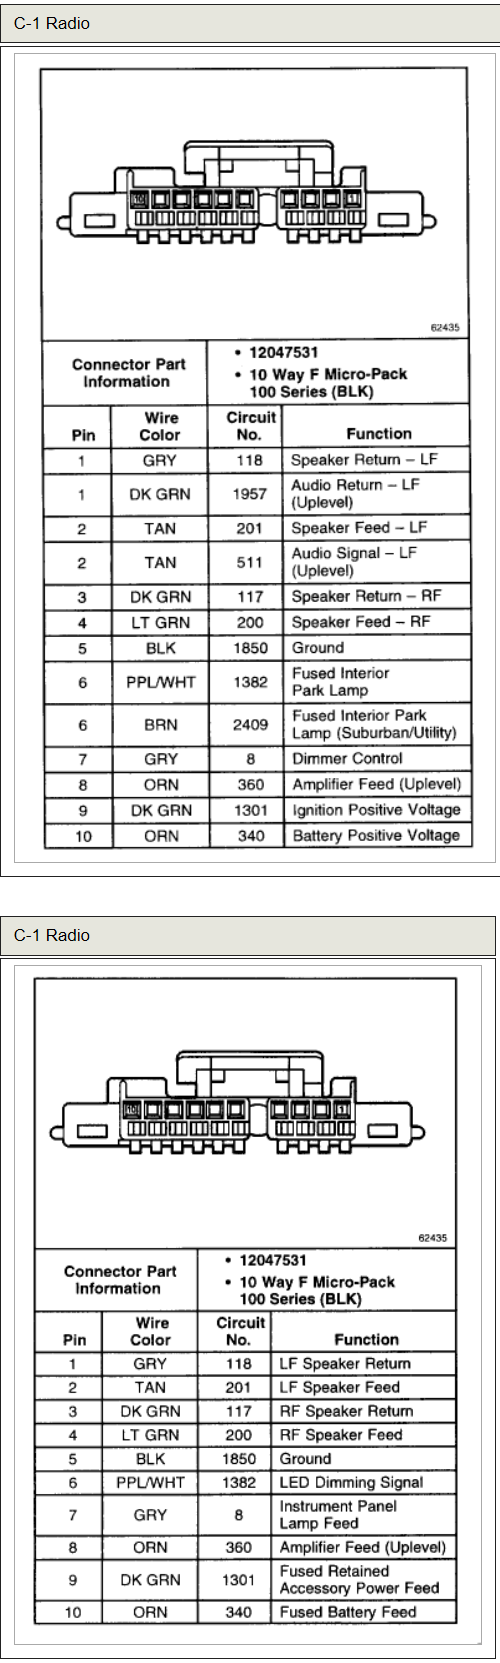 1998 chevy tahoe stereo wiring diagram 1998 image chevrolet car radio stereo audio wiring diagram autoradio on 1998 chevy tahoe stereo wiring diagram